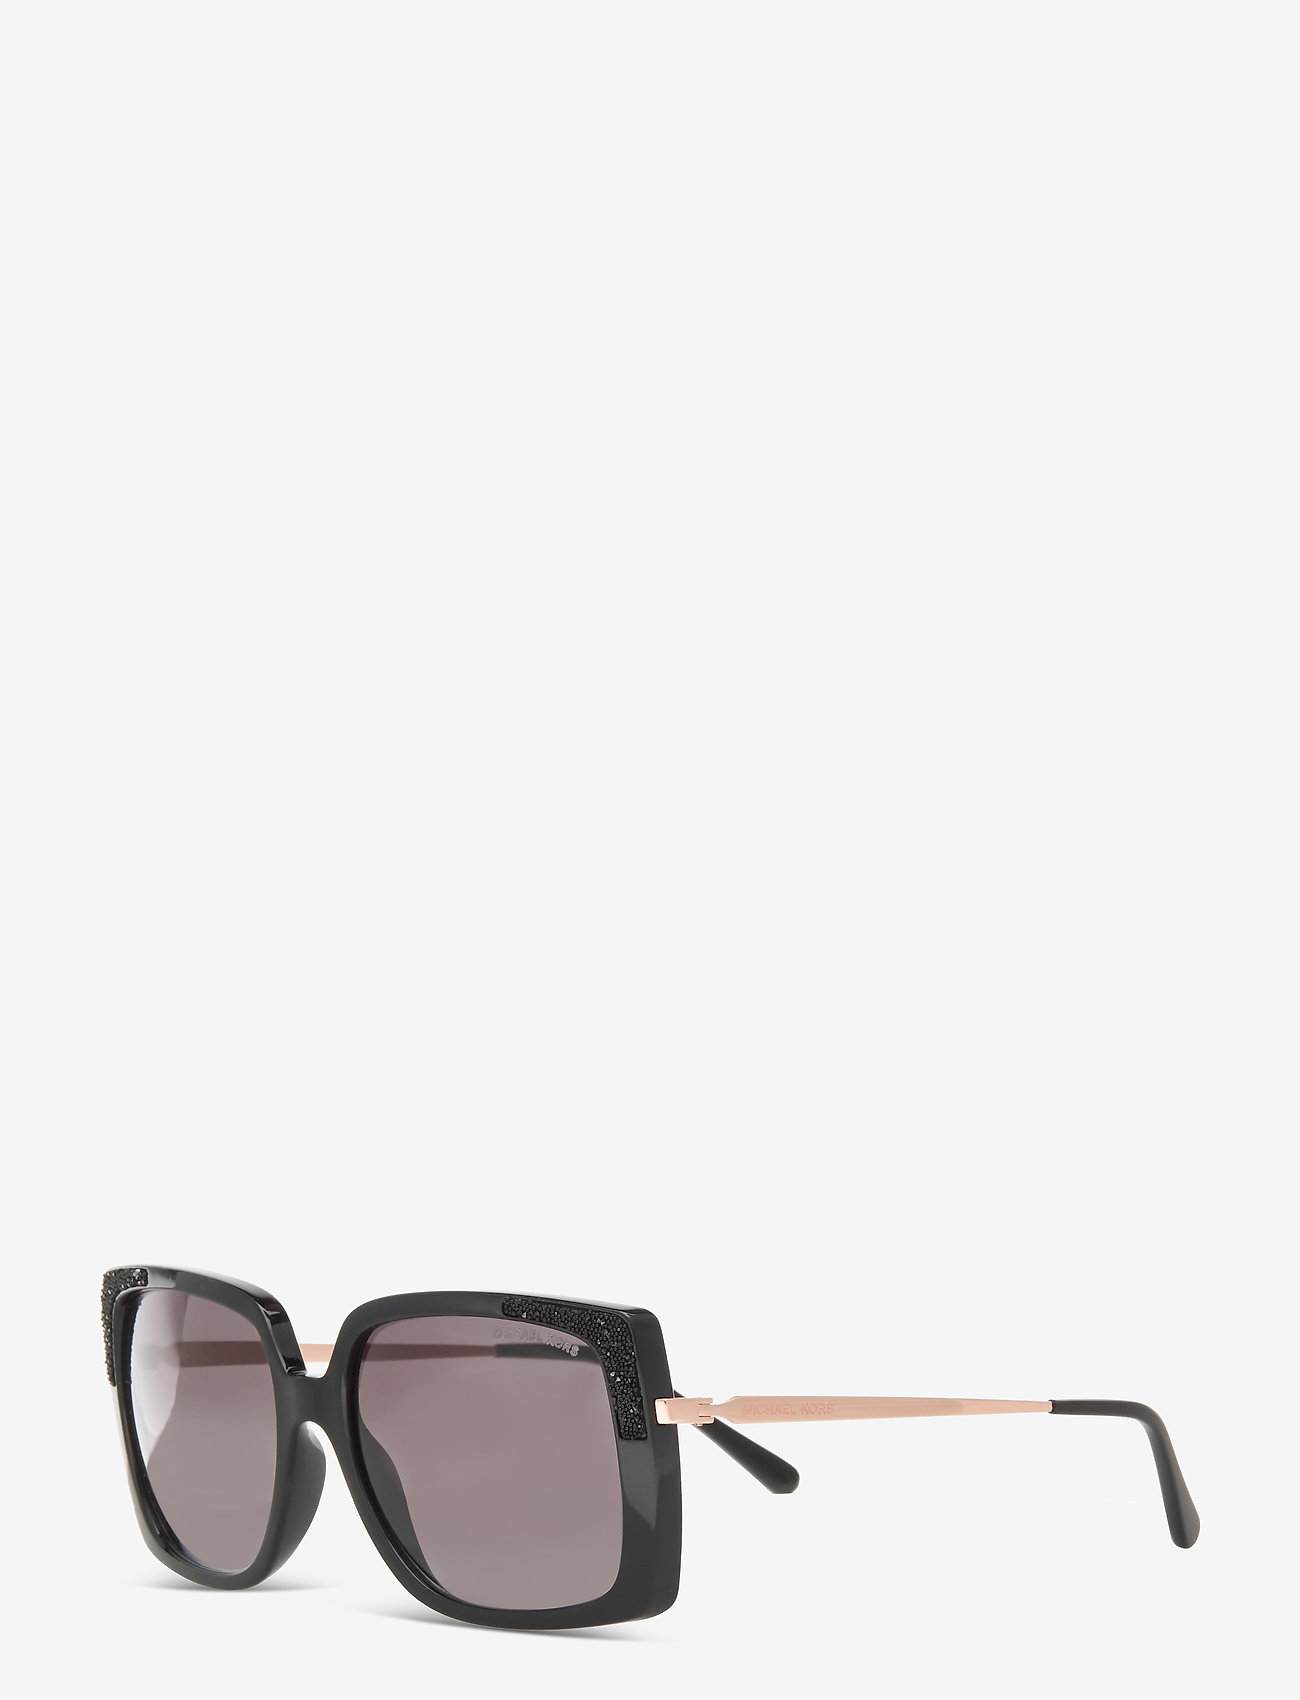 Michael Kors Sunglasses - ROCHELLE - rechthoekig model - dark grey gradient - 1